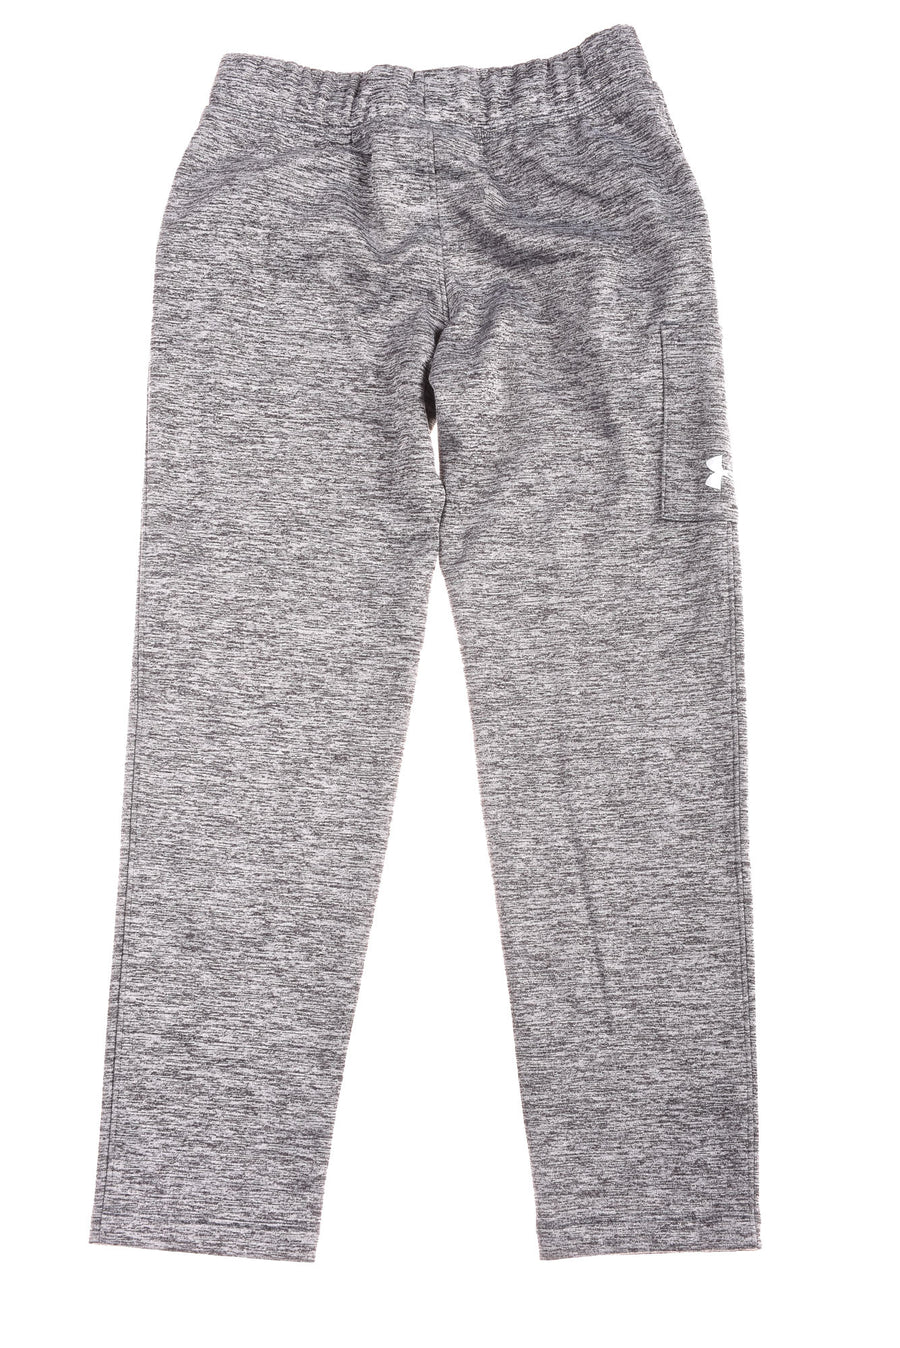 USED Under Armour Girl's Pants Medium Gray